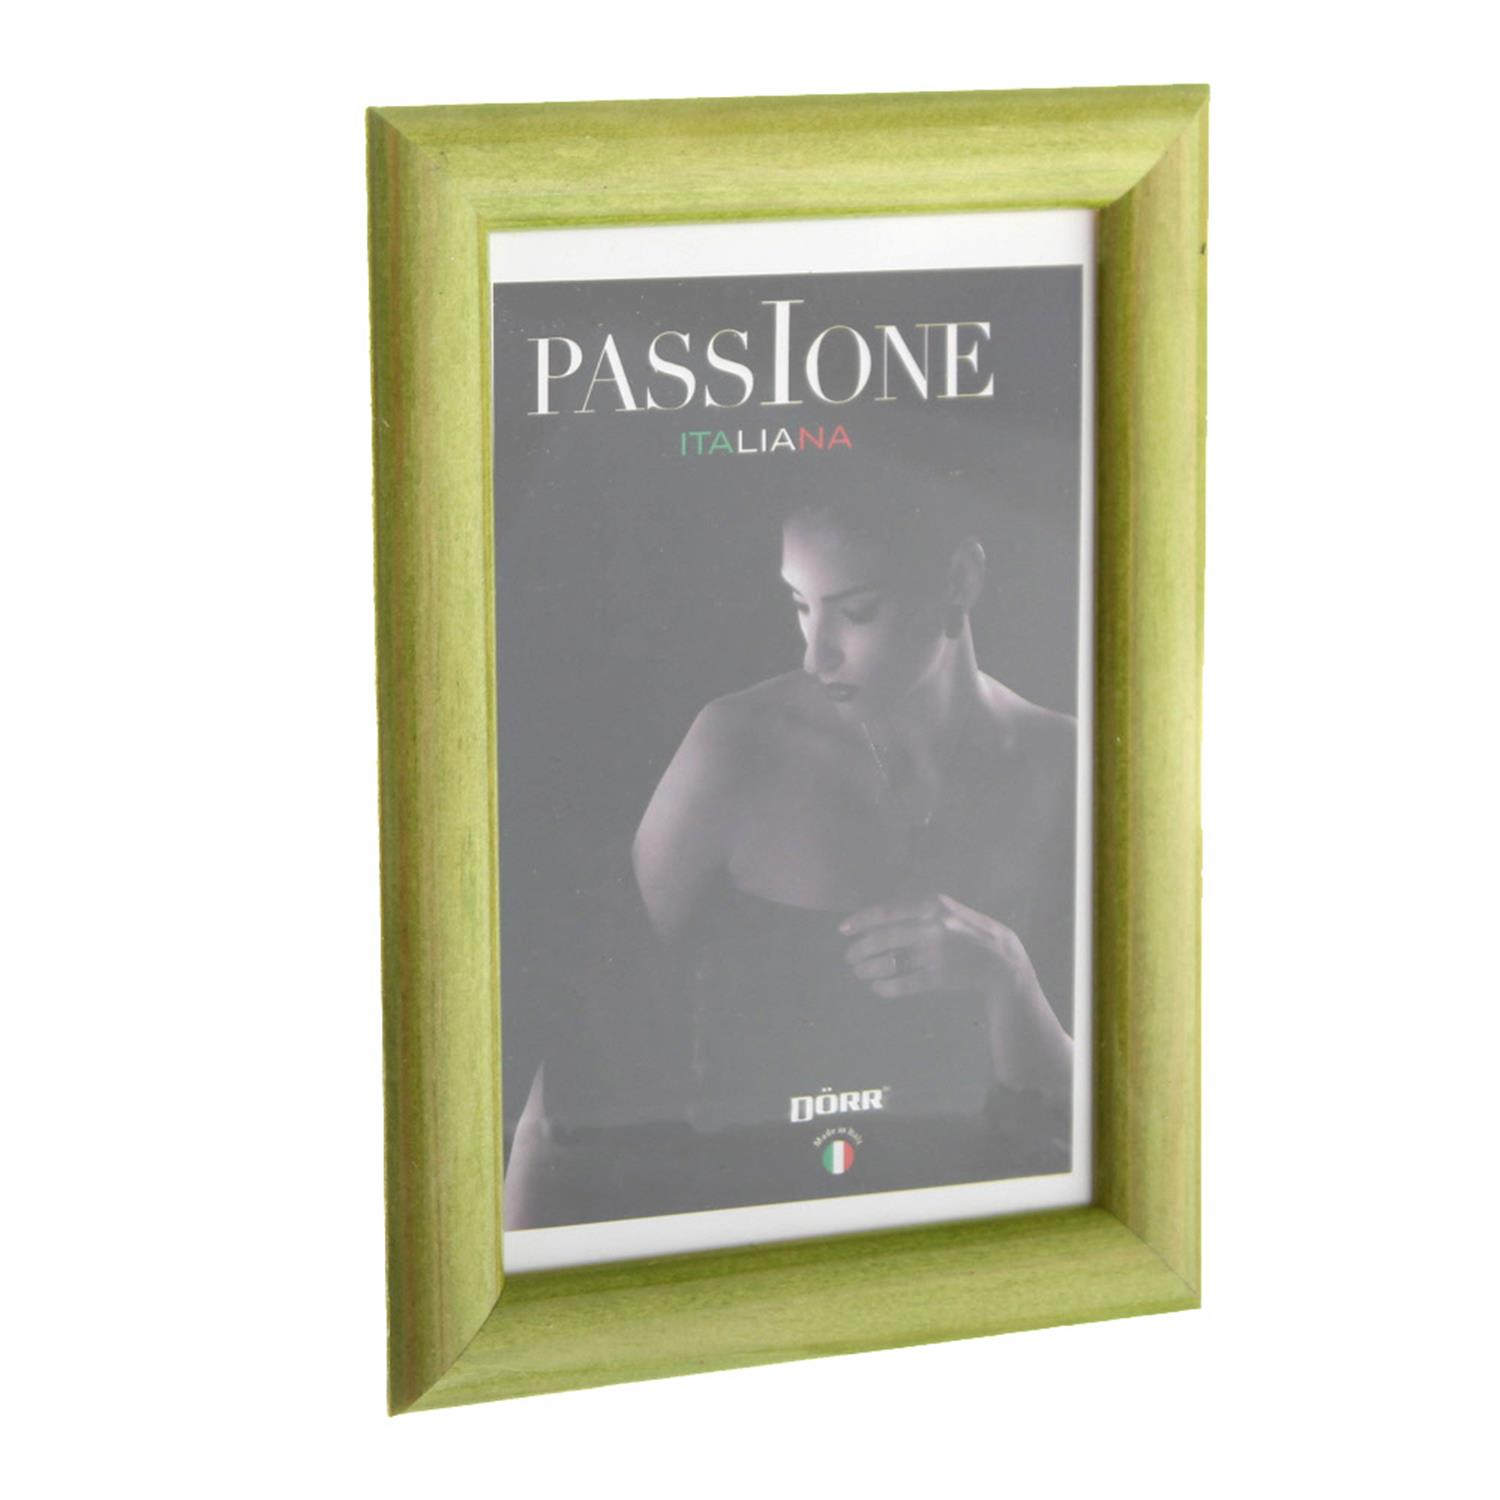 Dorr Guidi Glossy Green Wooden 12x8 Photo Frame